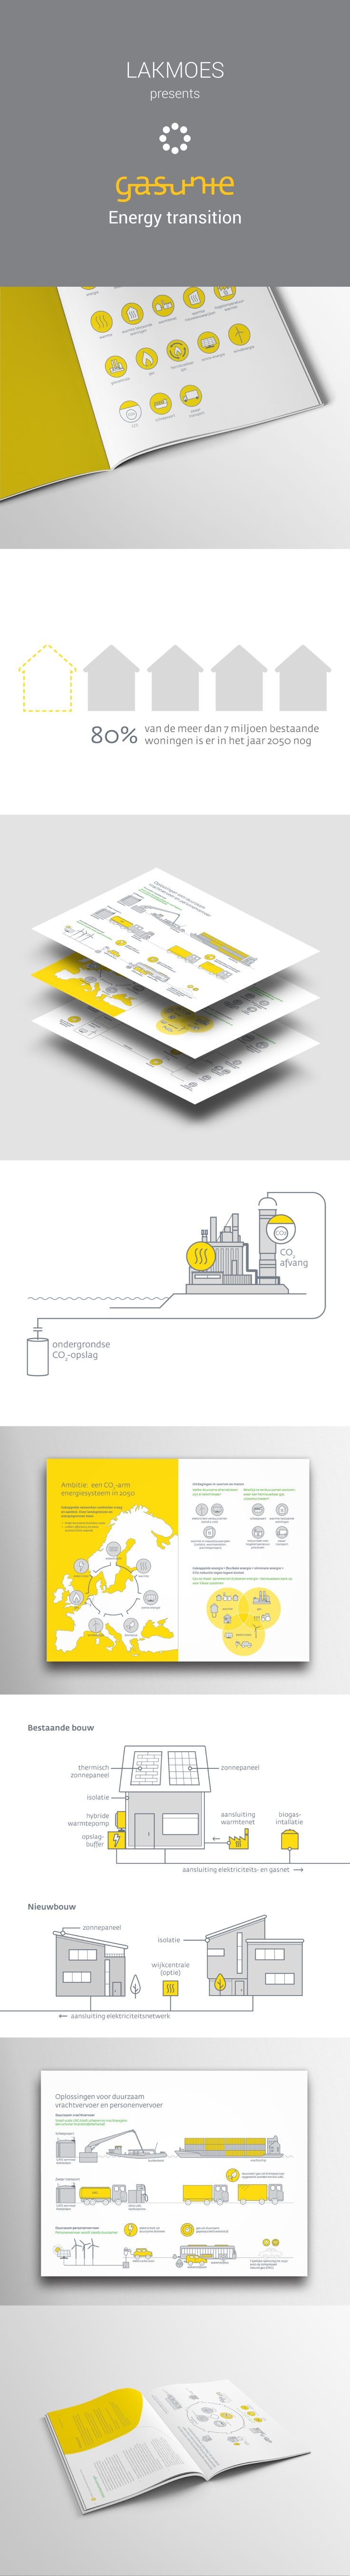 Visualization of the energy transition and the role of gas and Gasunie #infograpics #studiolakmoes #datavisualization #information #graphicdesign #icondesign #flatdesign #linework